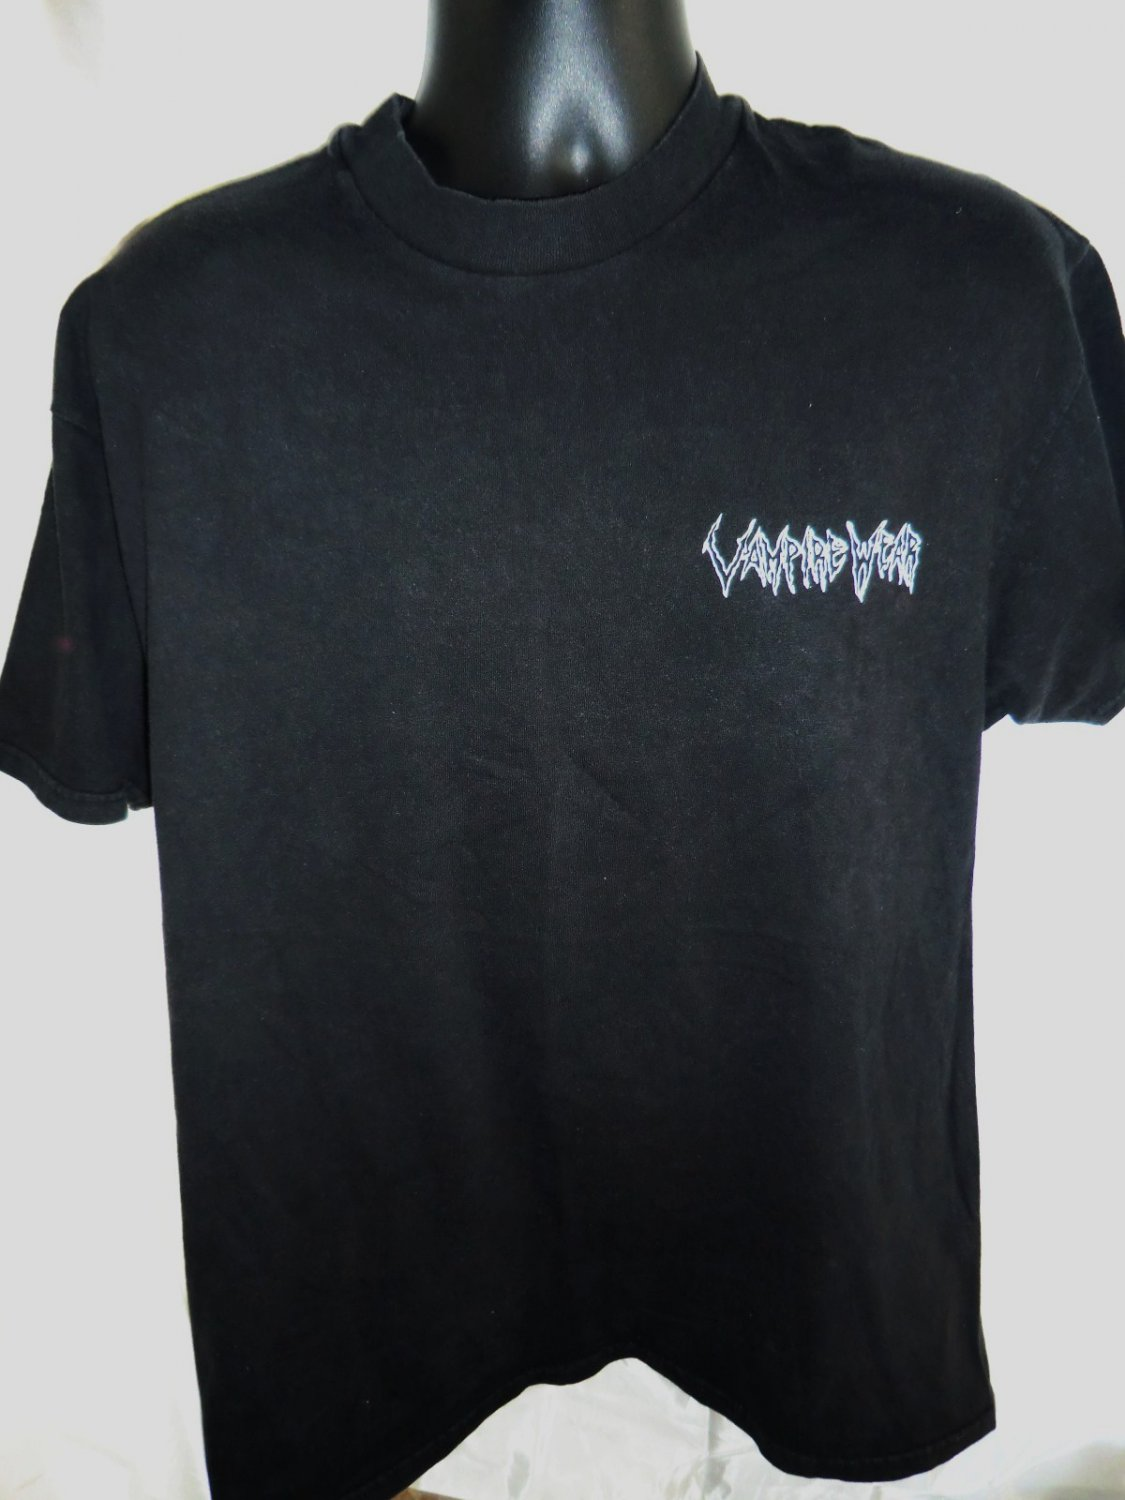 VAMPIRE WEAR Go For The Treat Size Large T-Shirt